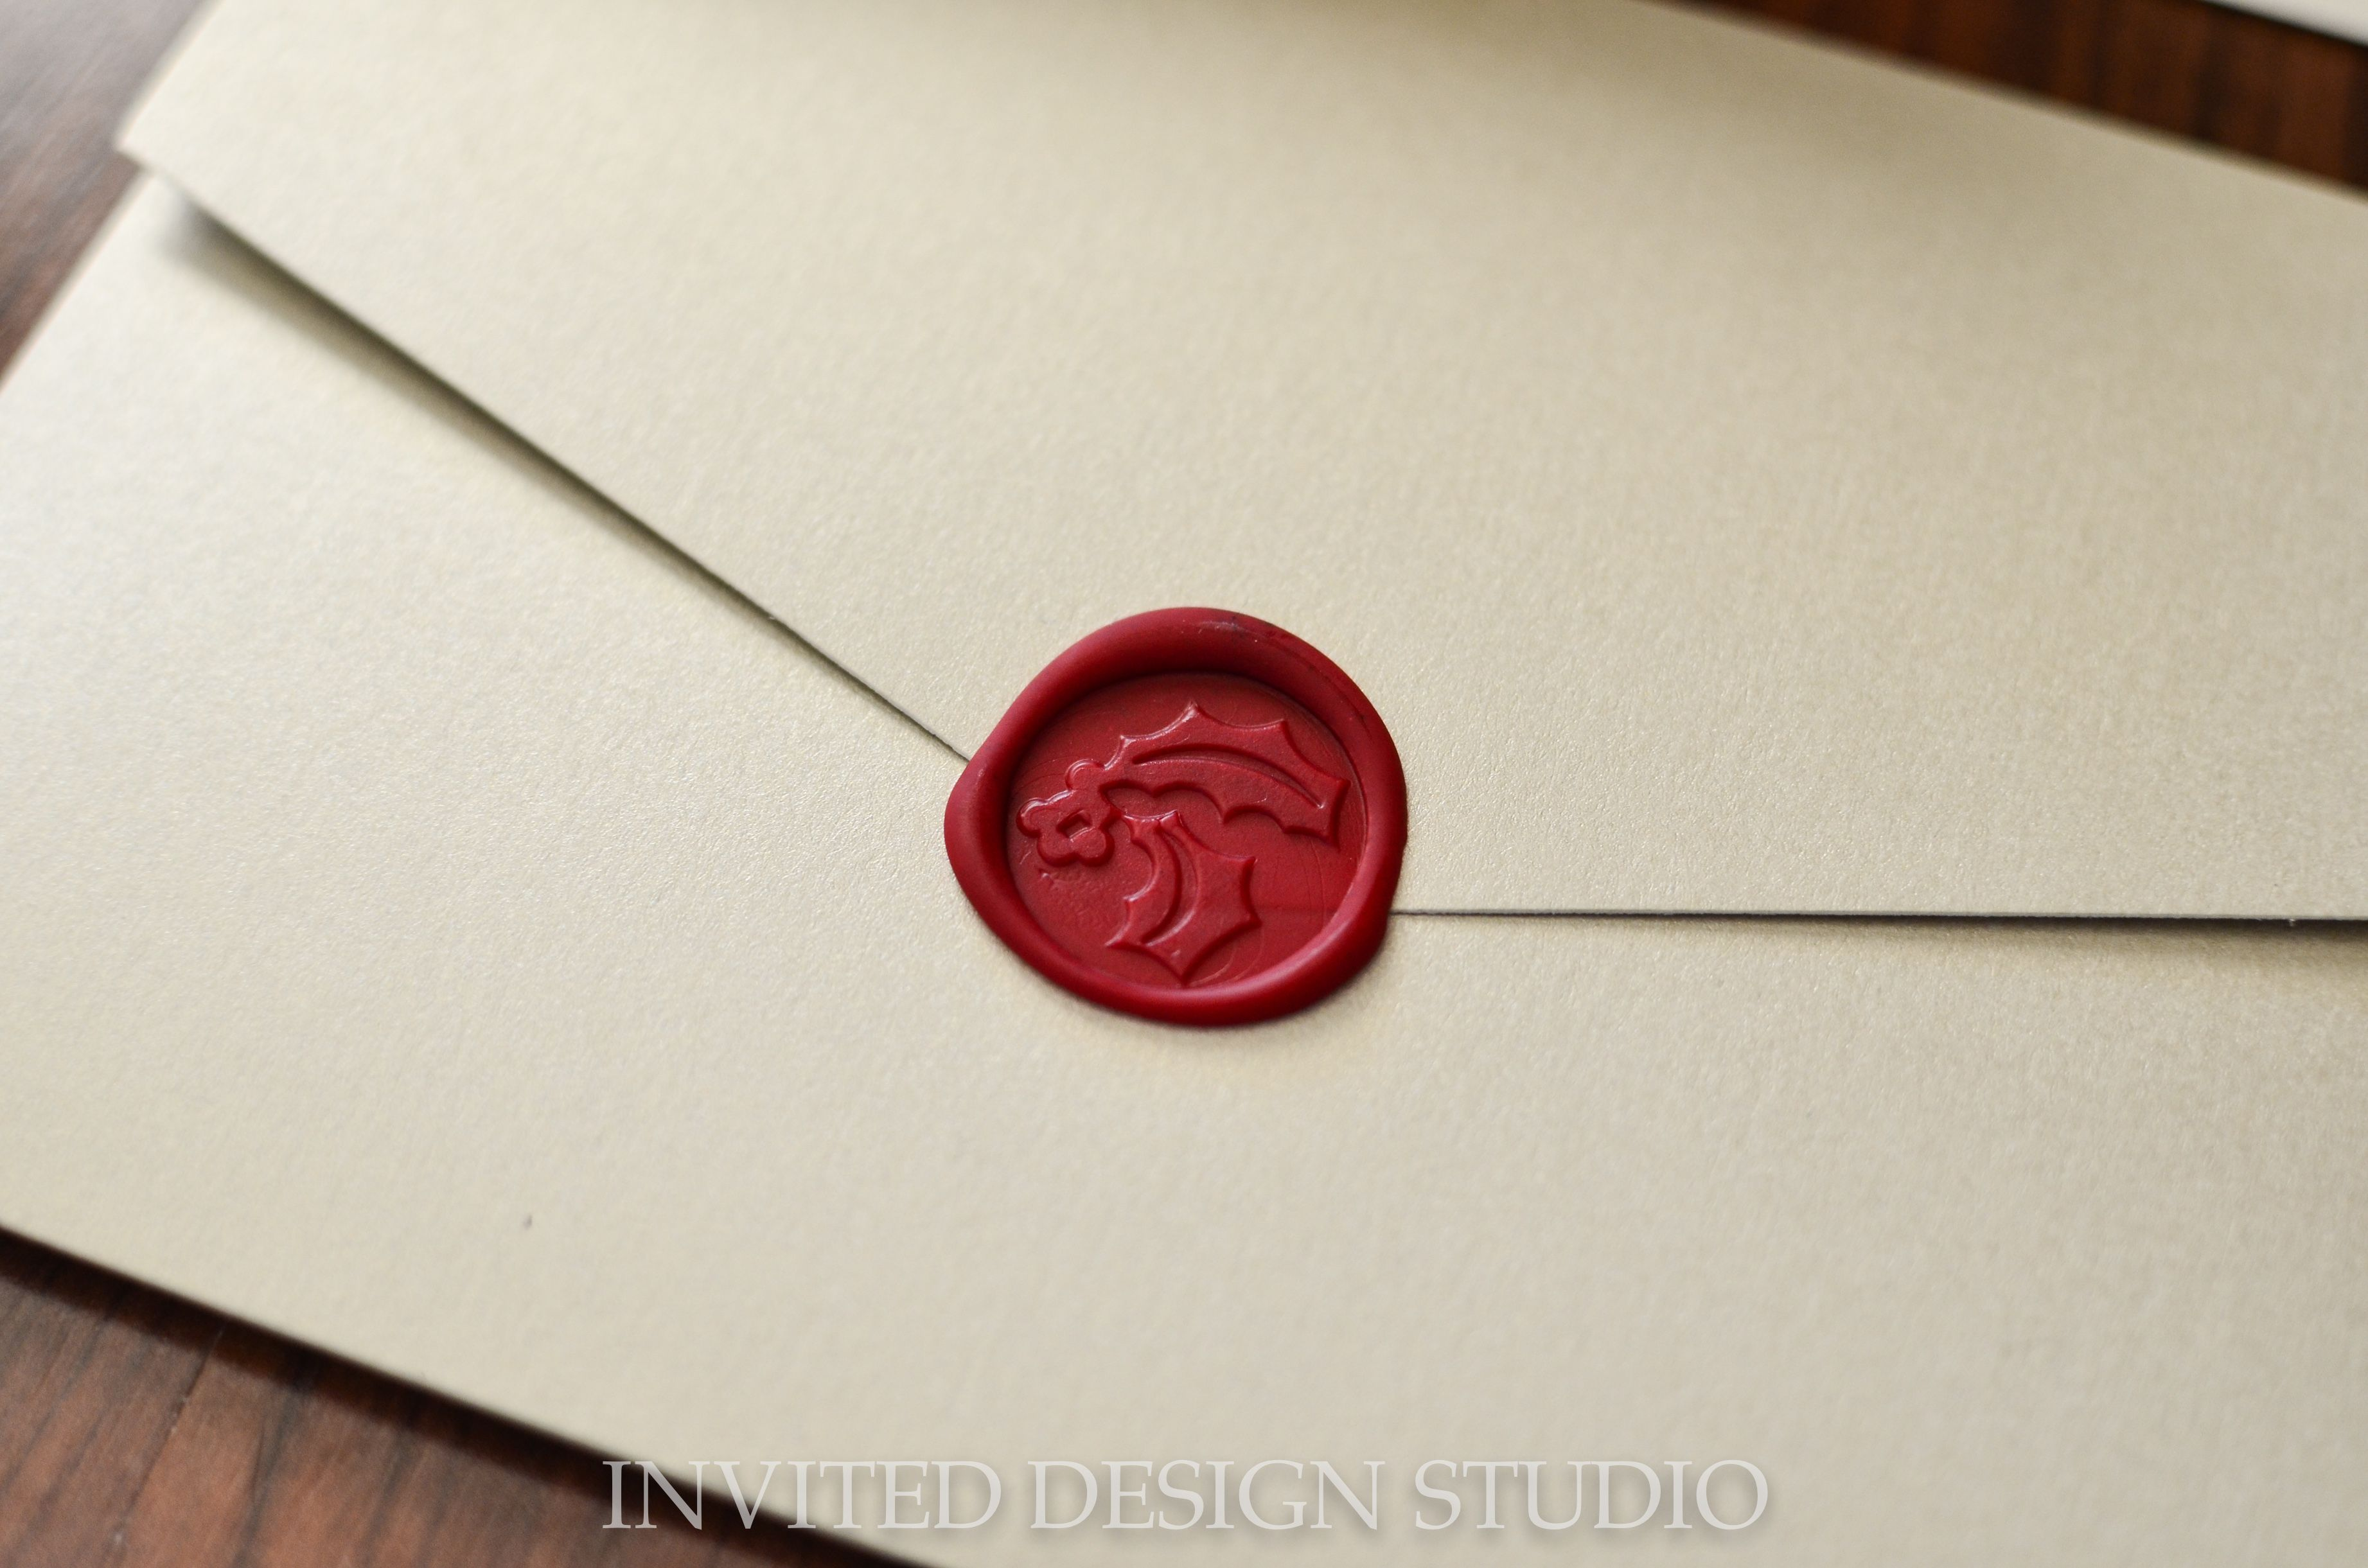 Wax Seals For Wedding Invitations: Wax Seal Wedding Invitation